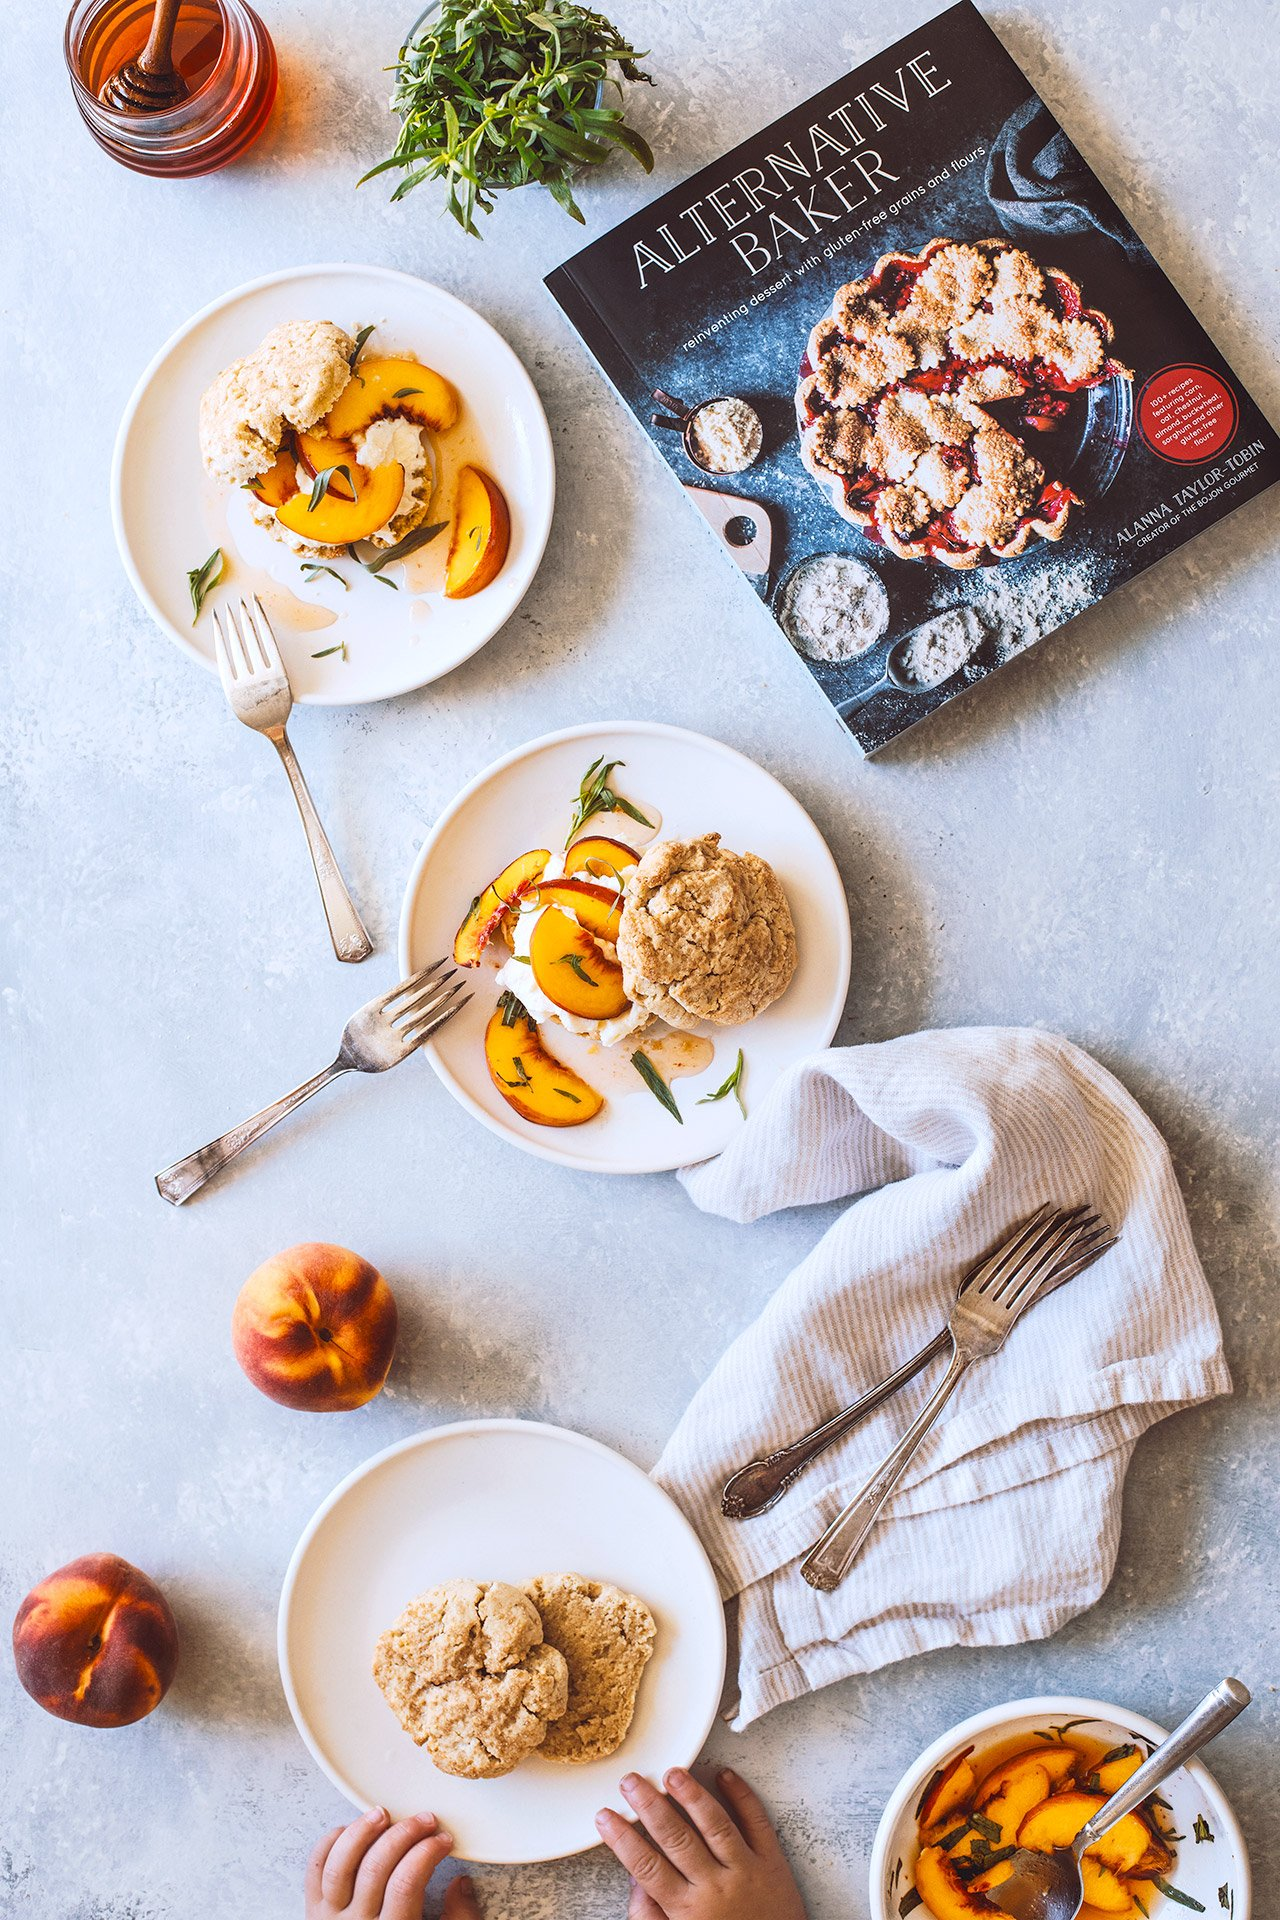 Lemon Ricotta Shortcakes with Peaches & Mascarpone Cream (Gluten Free) + Alternative Baker Cookbook!! | HonestlyYUM (honestlyyum.com)